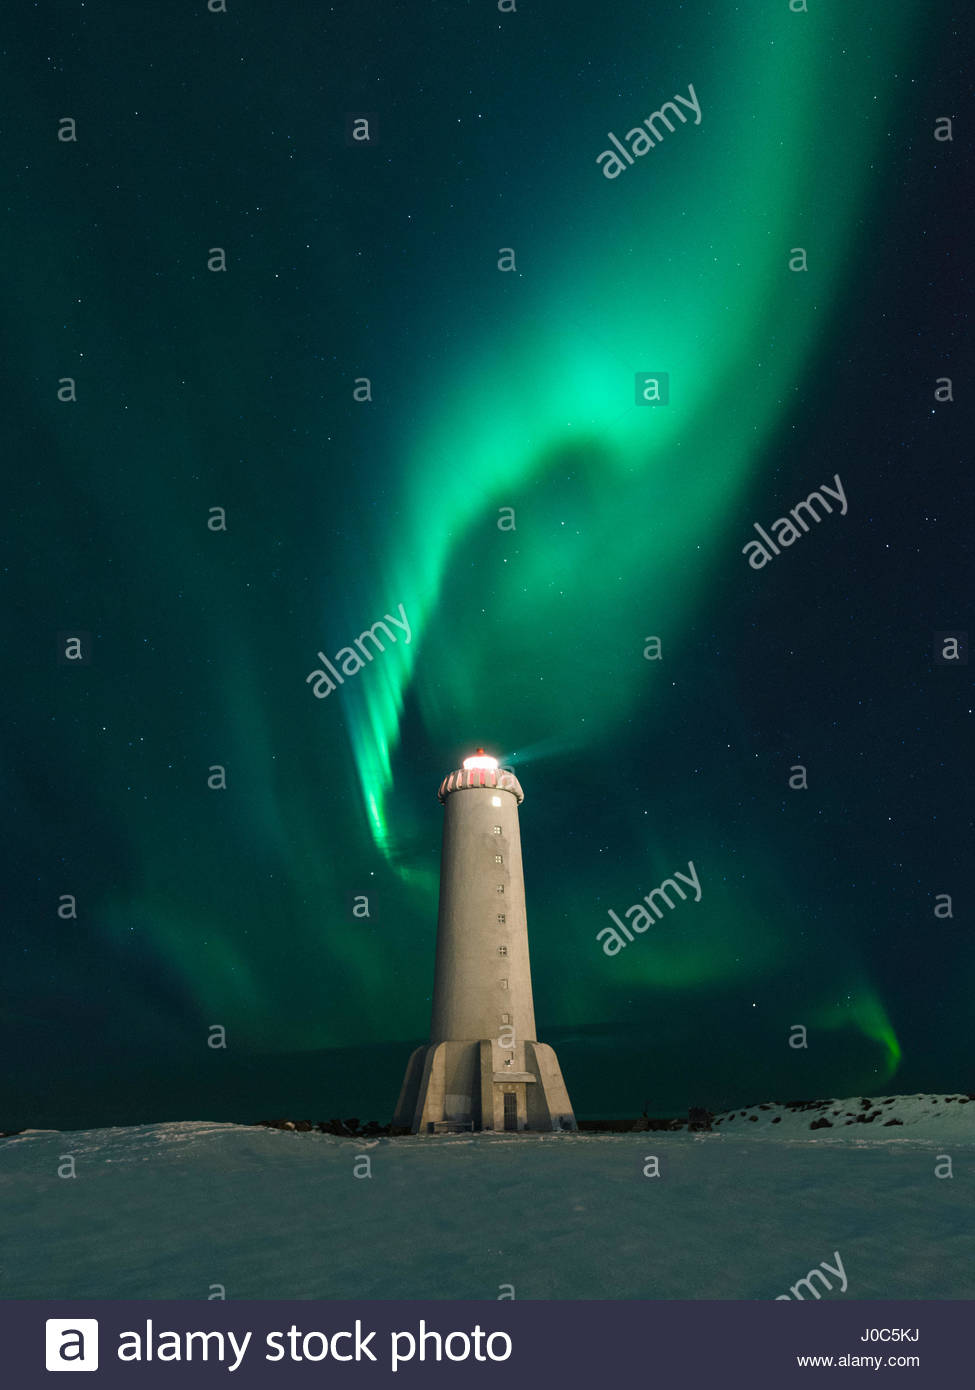 Aurora borealis swirling green over lighthouse at night,   Akranes, Iceland - Stock Image